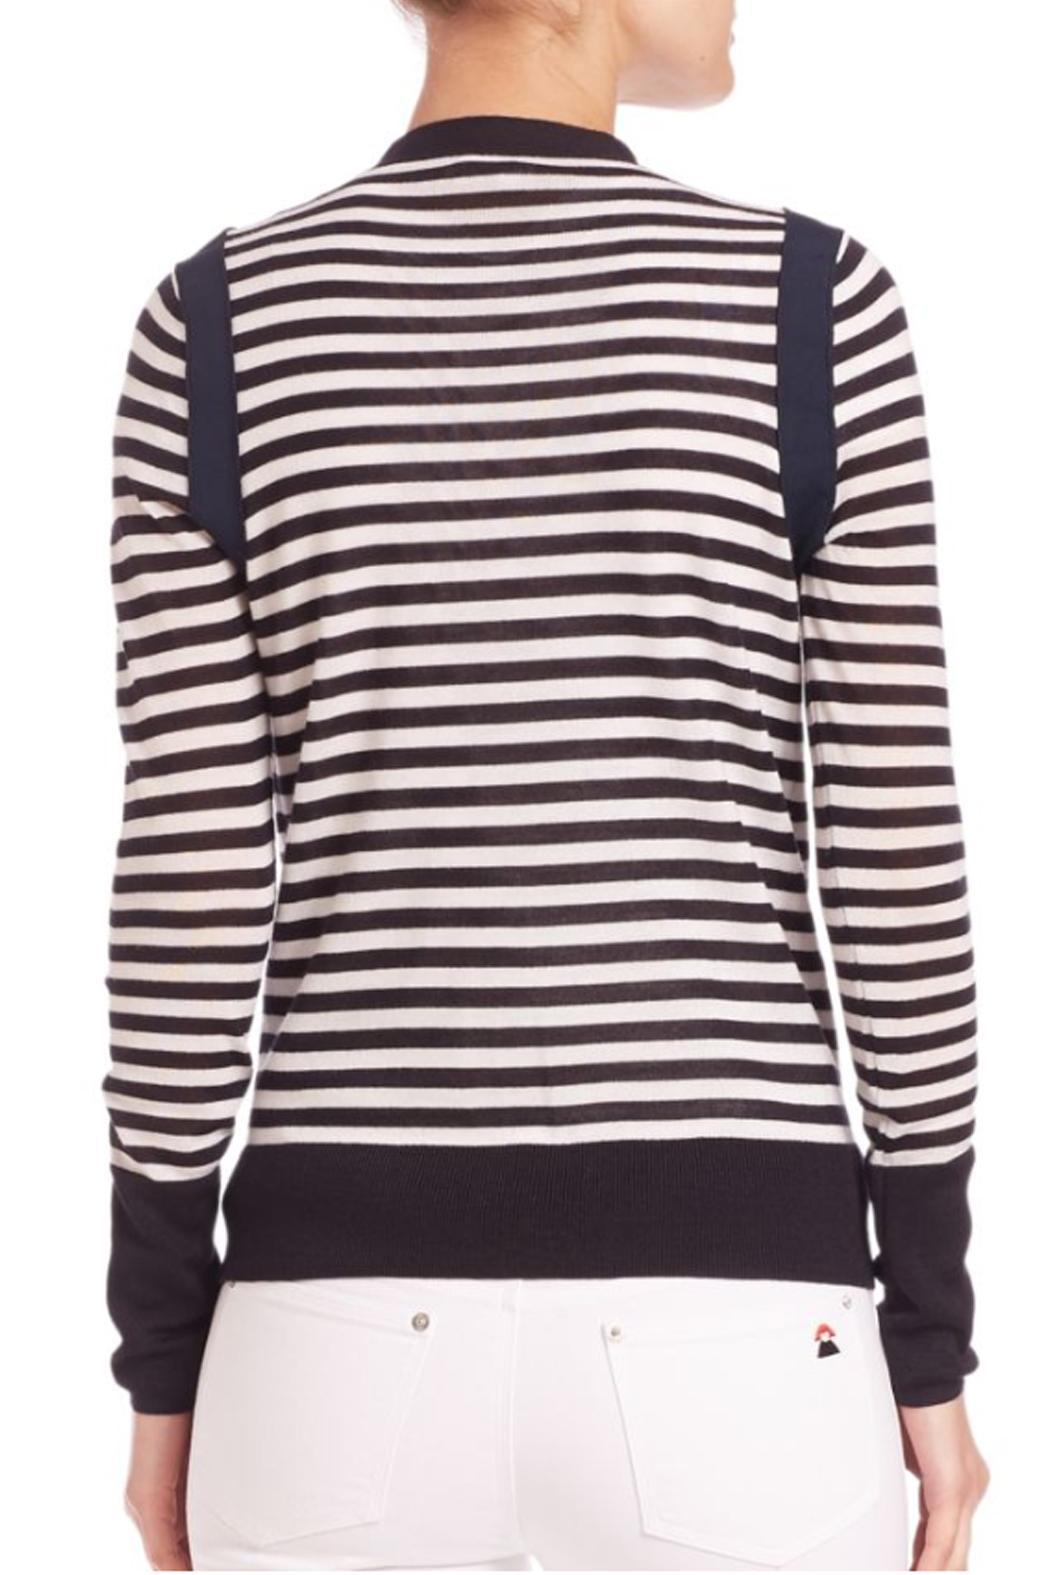 Sonia by Sonia Rykiel Striped Navy Cardigan - Side Cropped Image